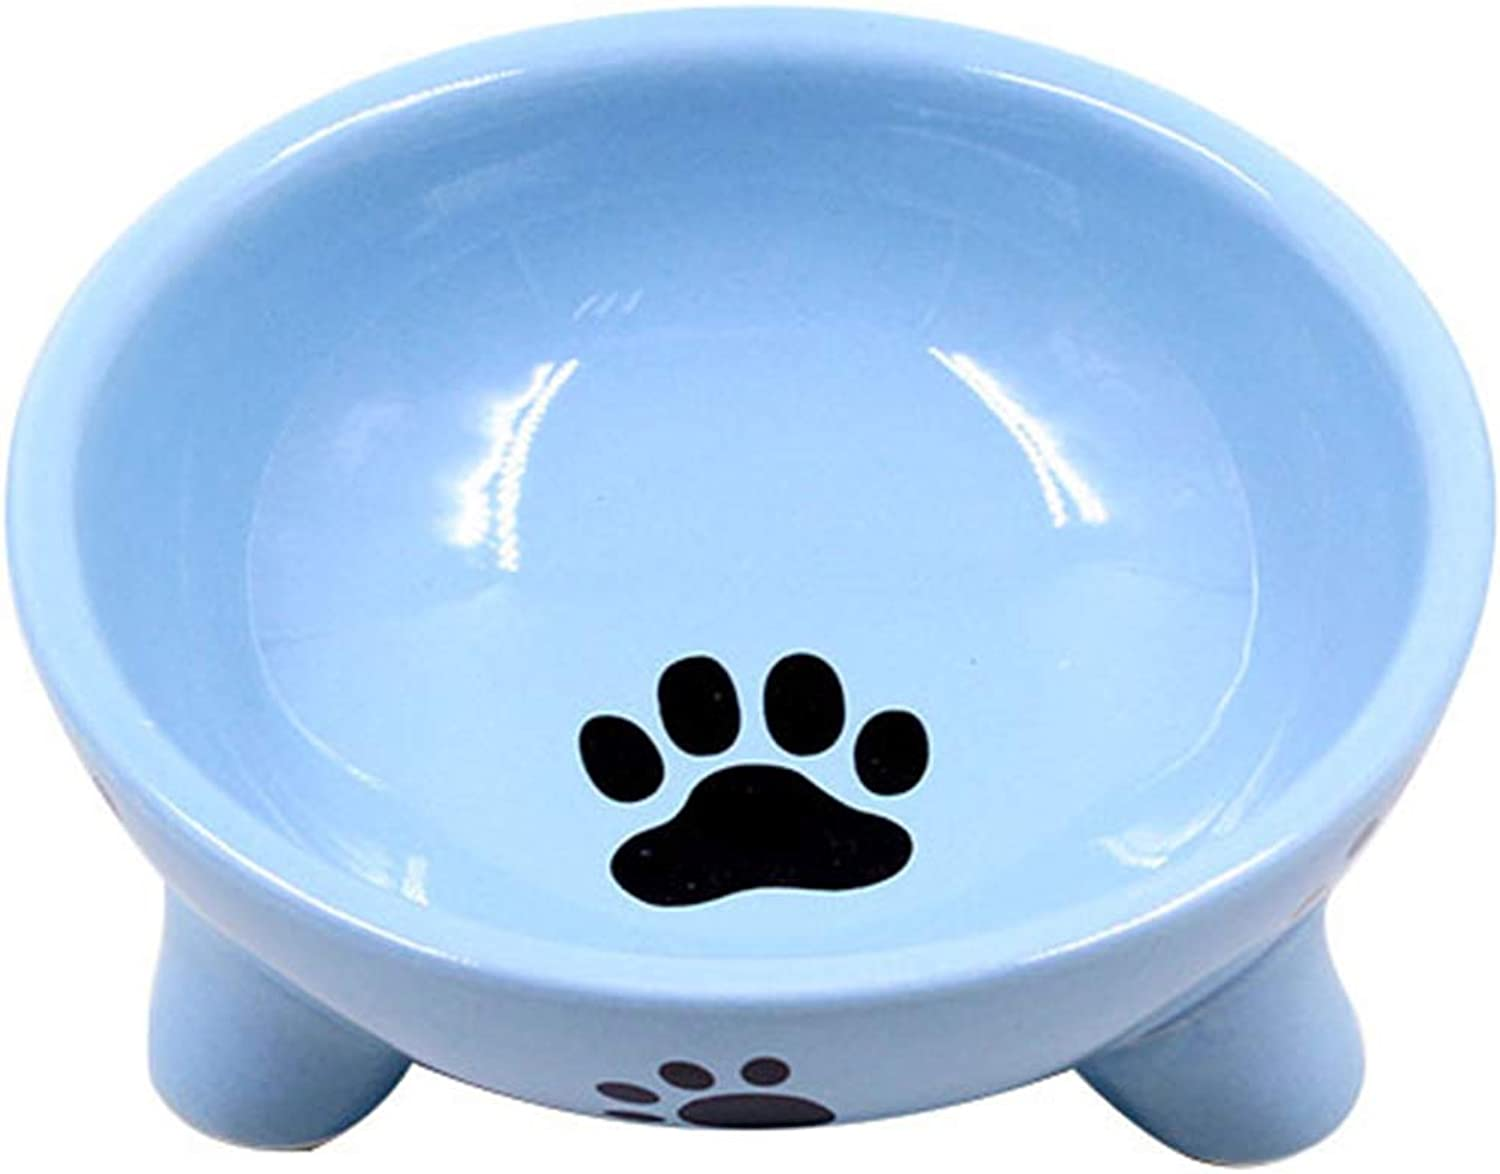 Dog Bowl Triangle Ceramic Kitten Dog Bowl Pet Supplies Small Pet Triangle Stable Feeder Water Food Bowl,bluee